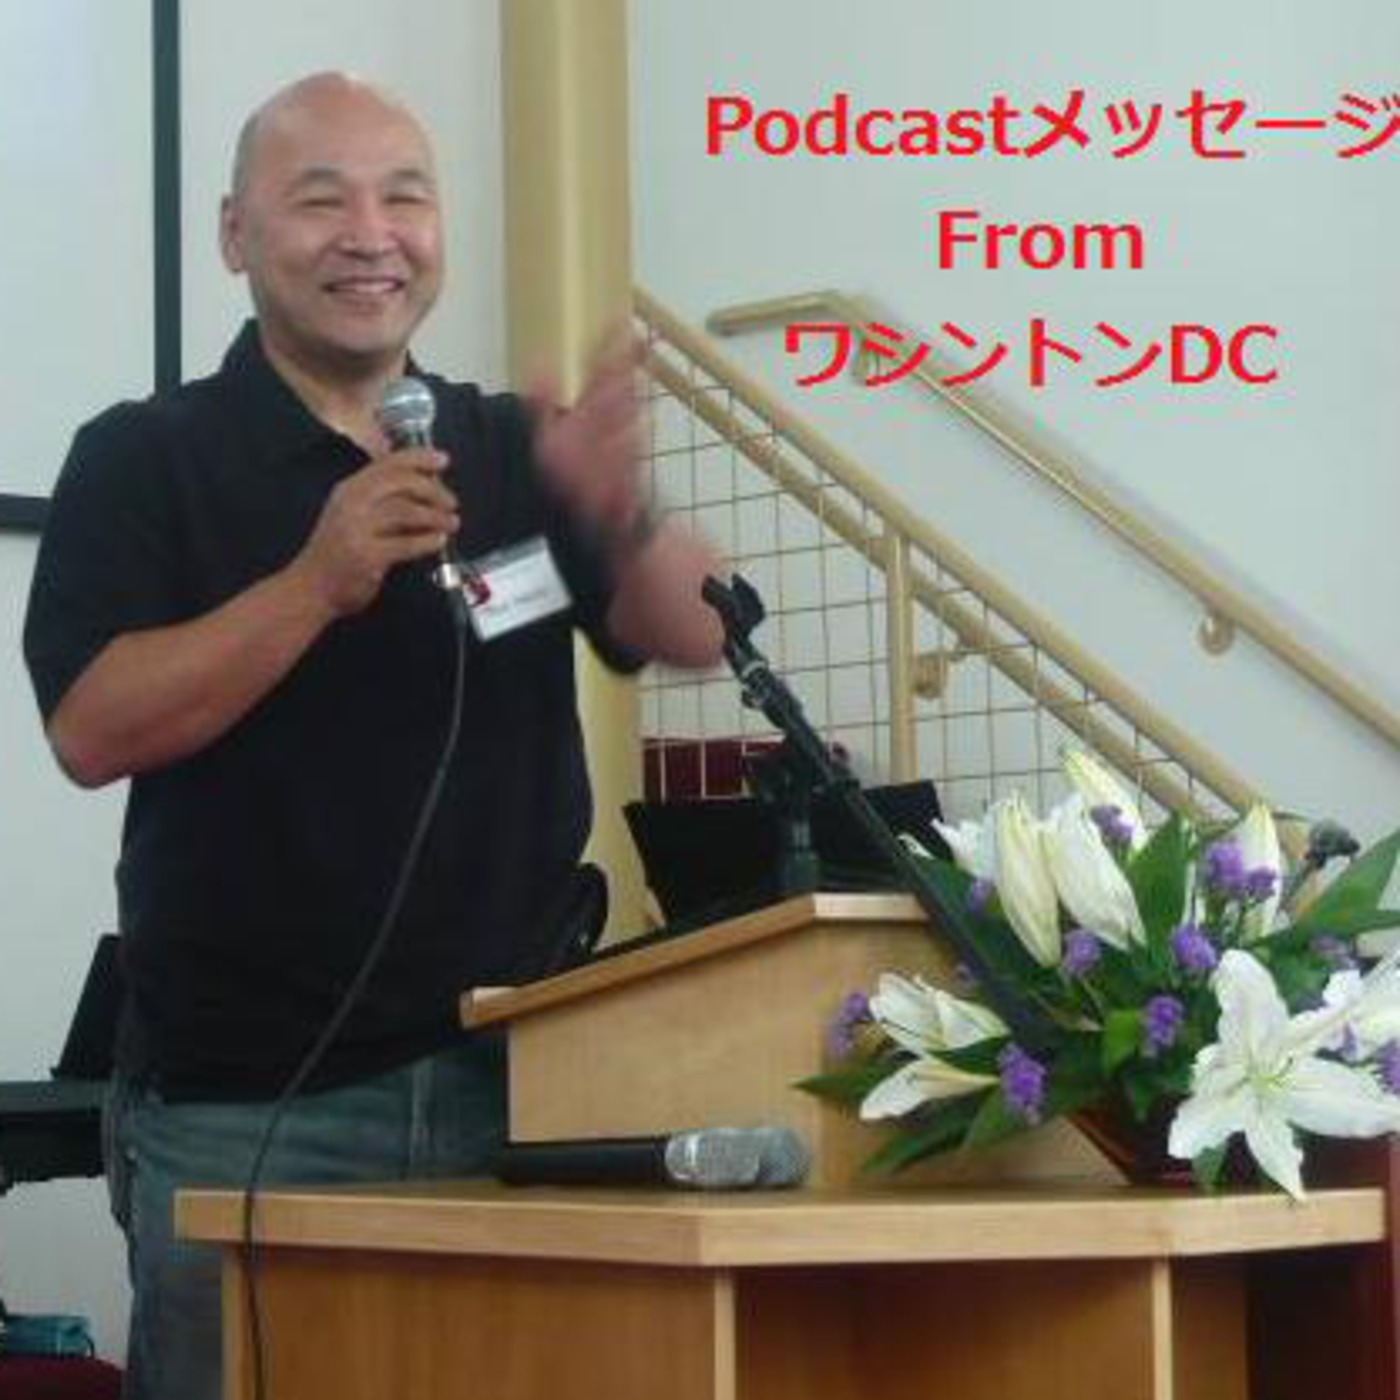 Nick Nishio's Podcast